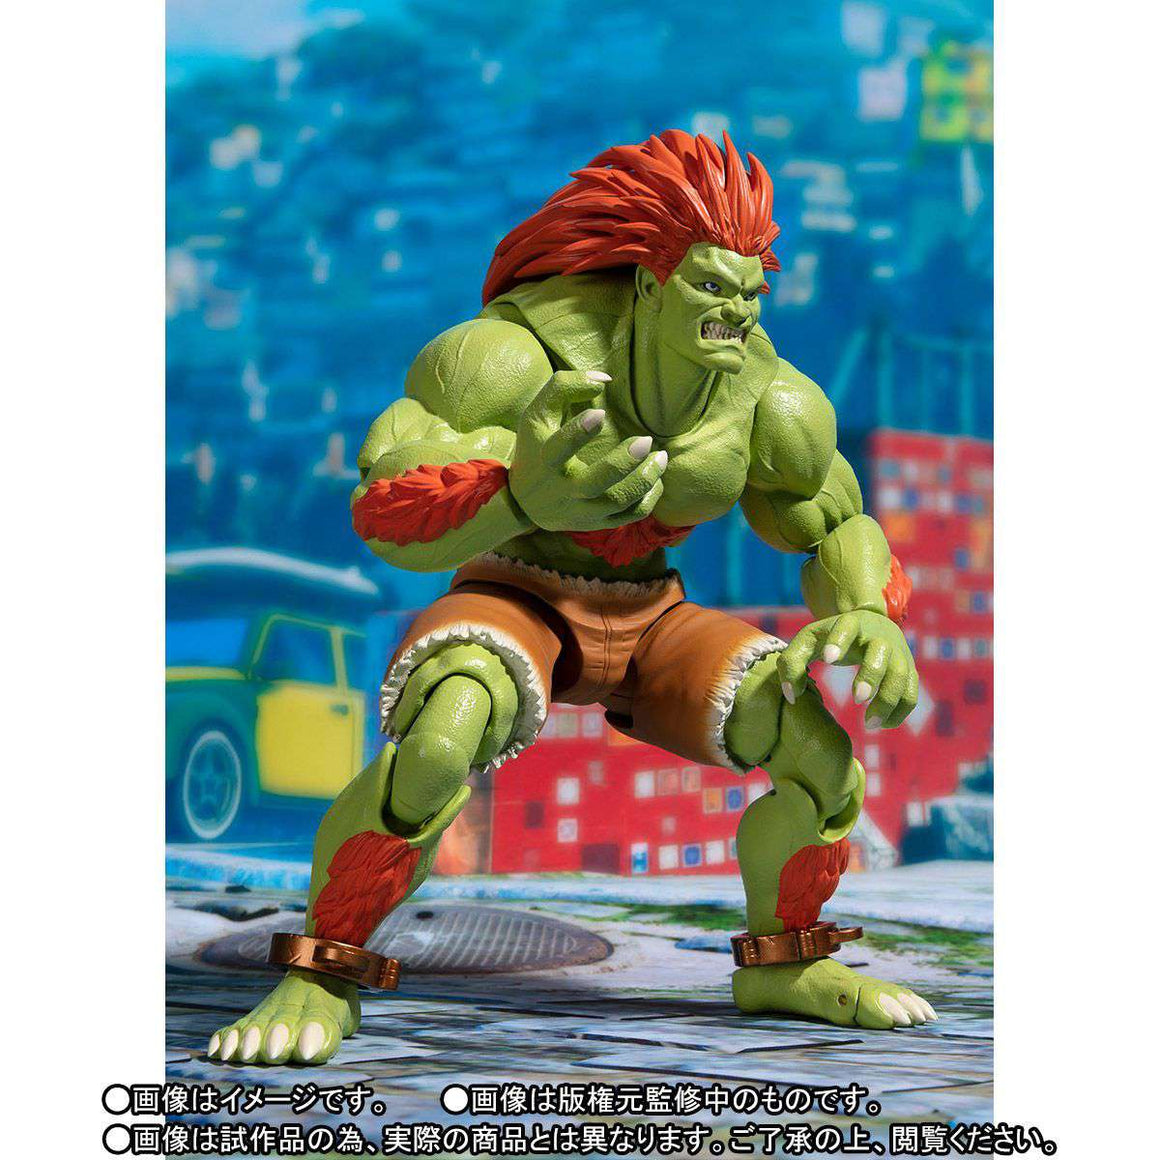 SH Figuarts Street Fighter Blanka